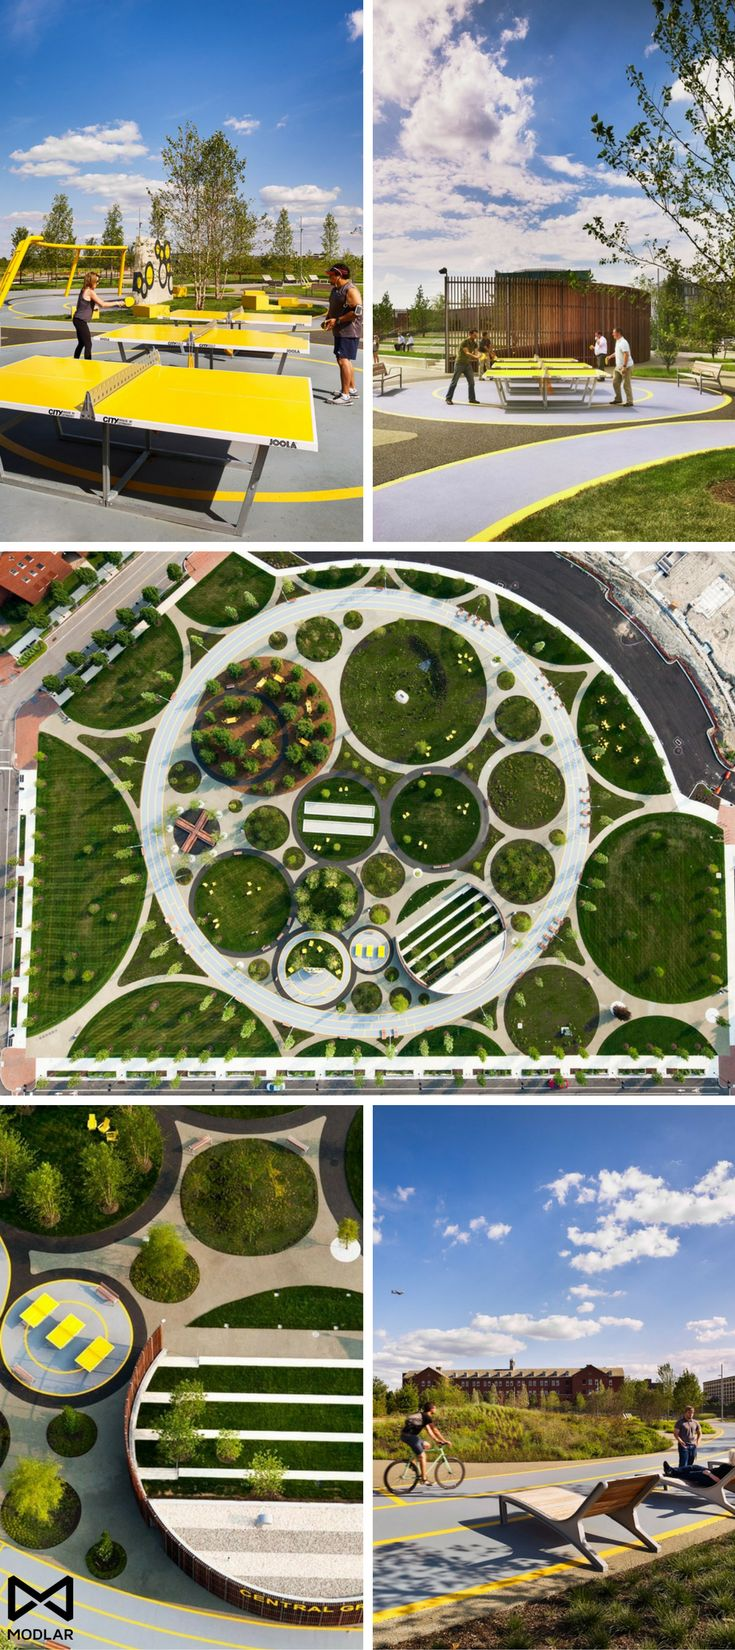 landscape architecture cover letter%0A The design fuses the natural history and native habitat of the site with  the more social